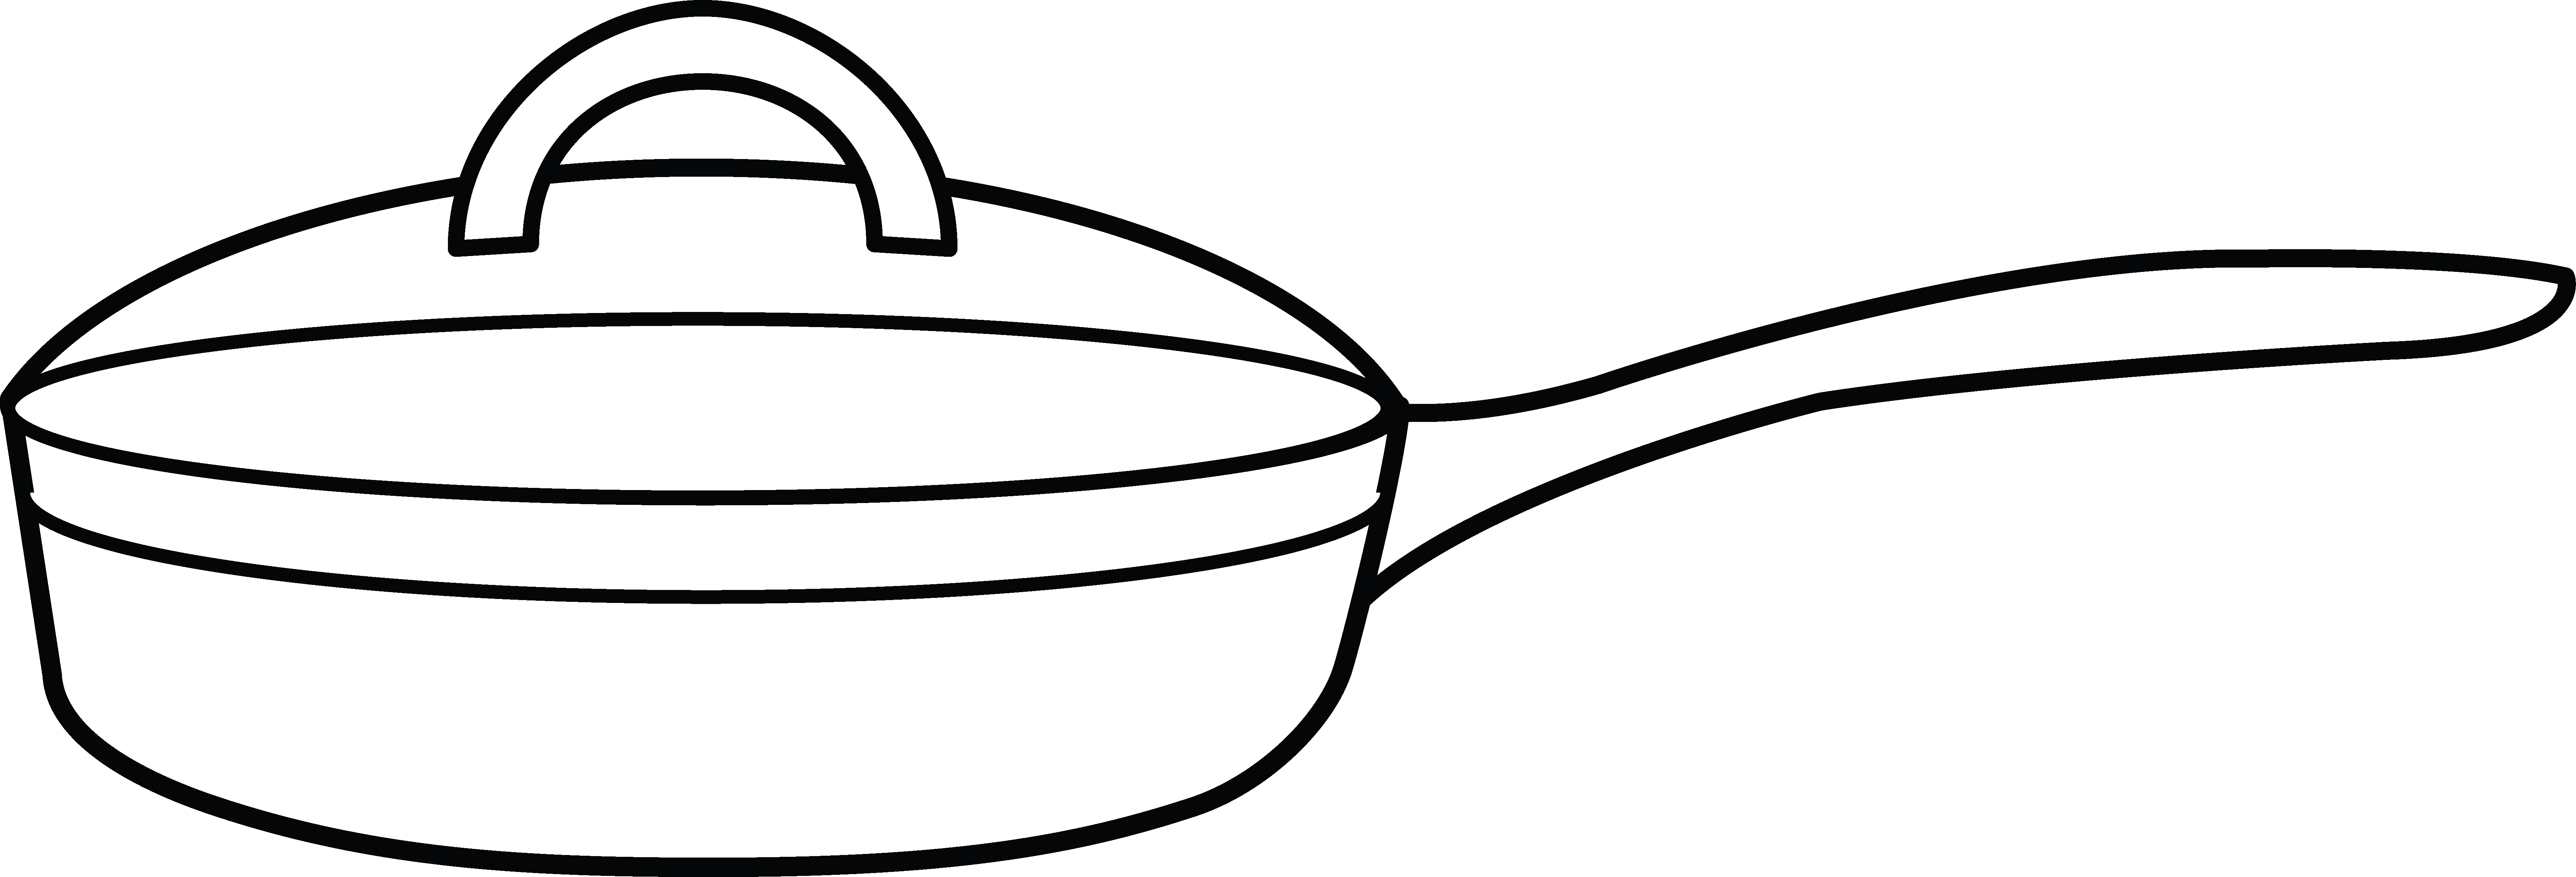 Frying pan coloring page. Cooking clipart fry cook